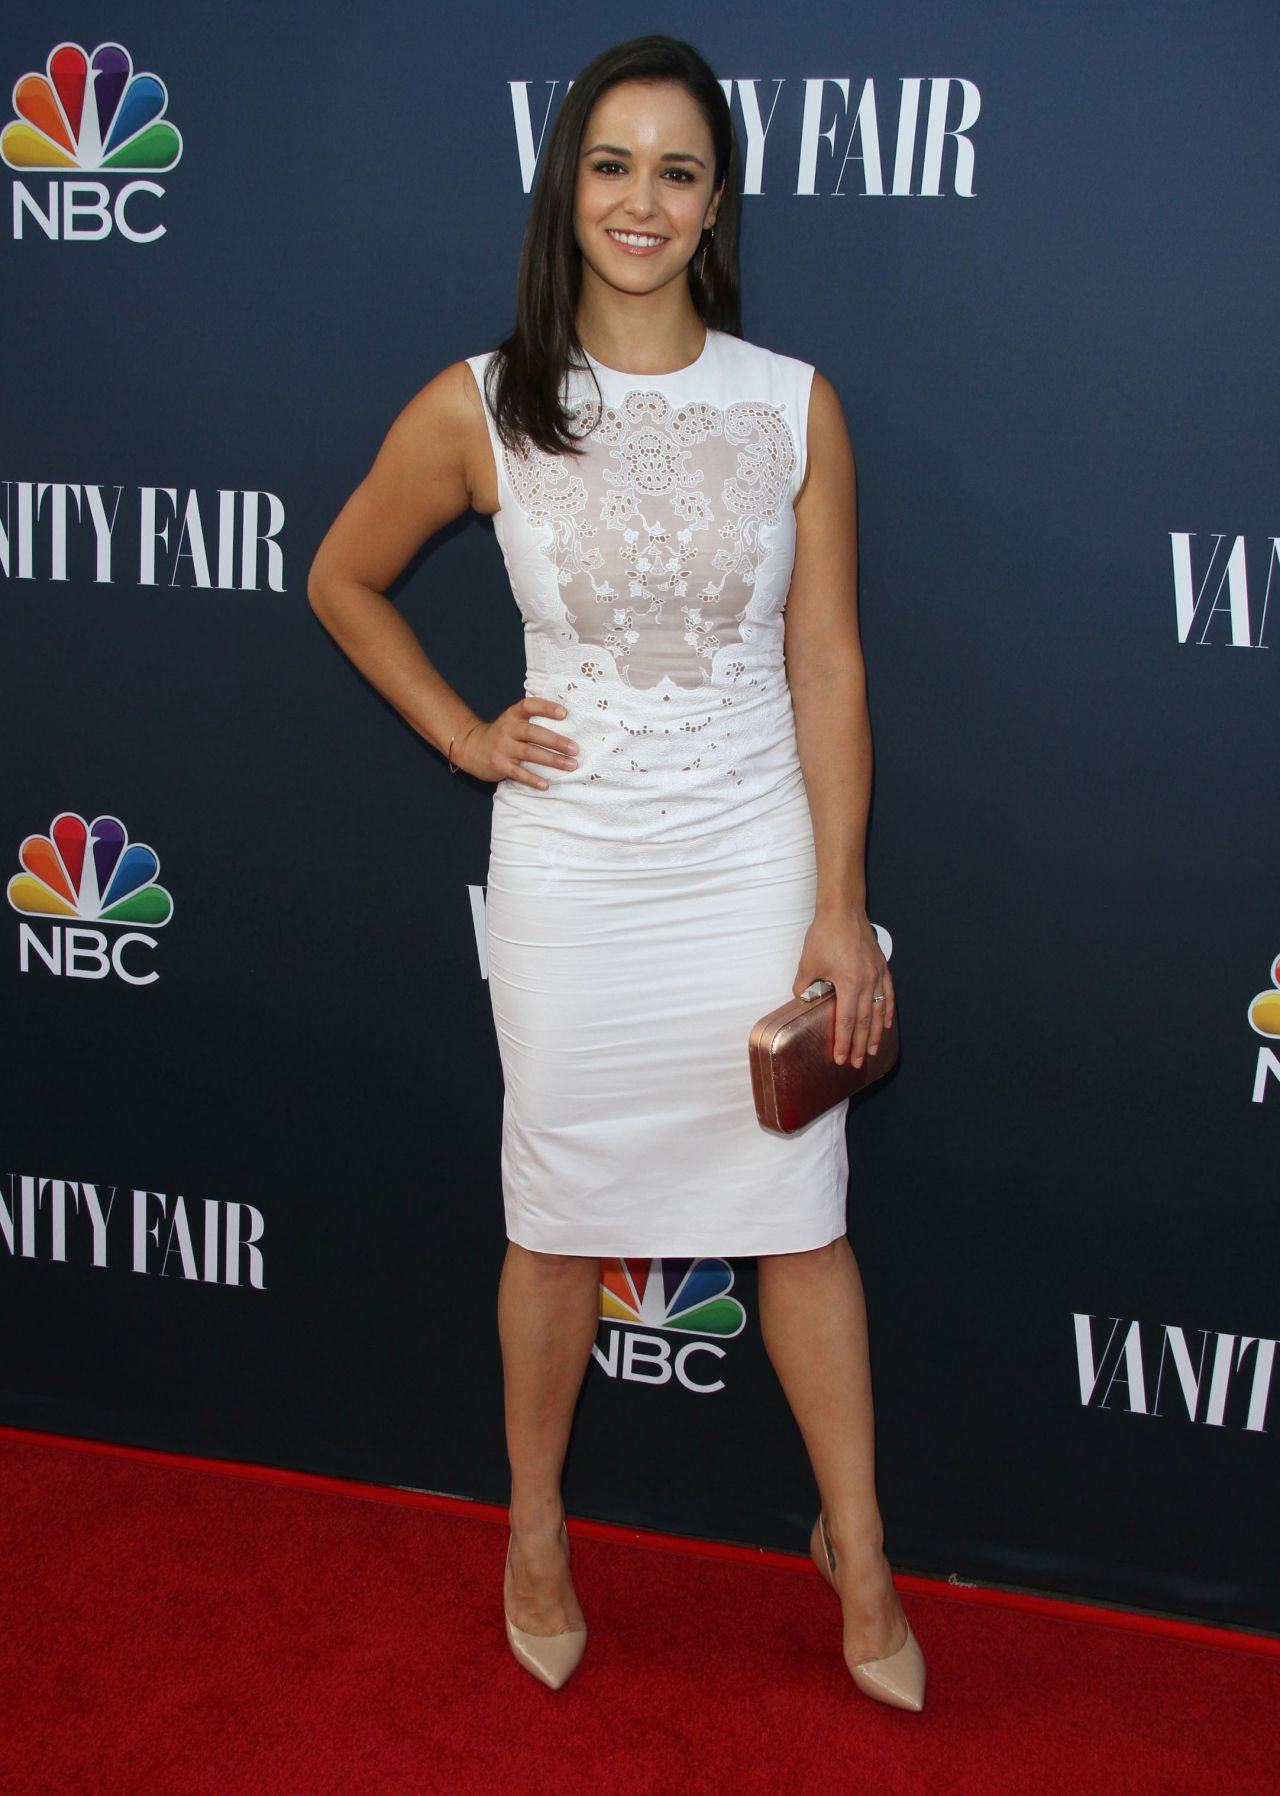 Melissa Fumero Nbc Universal Vanity Fair Party In Los